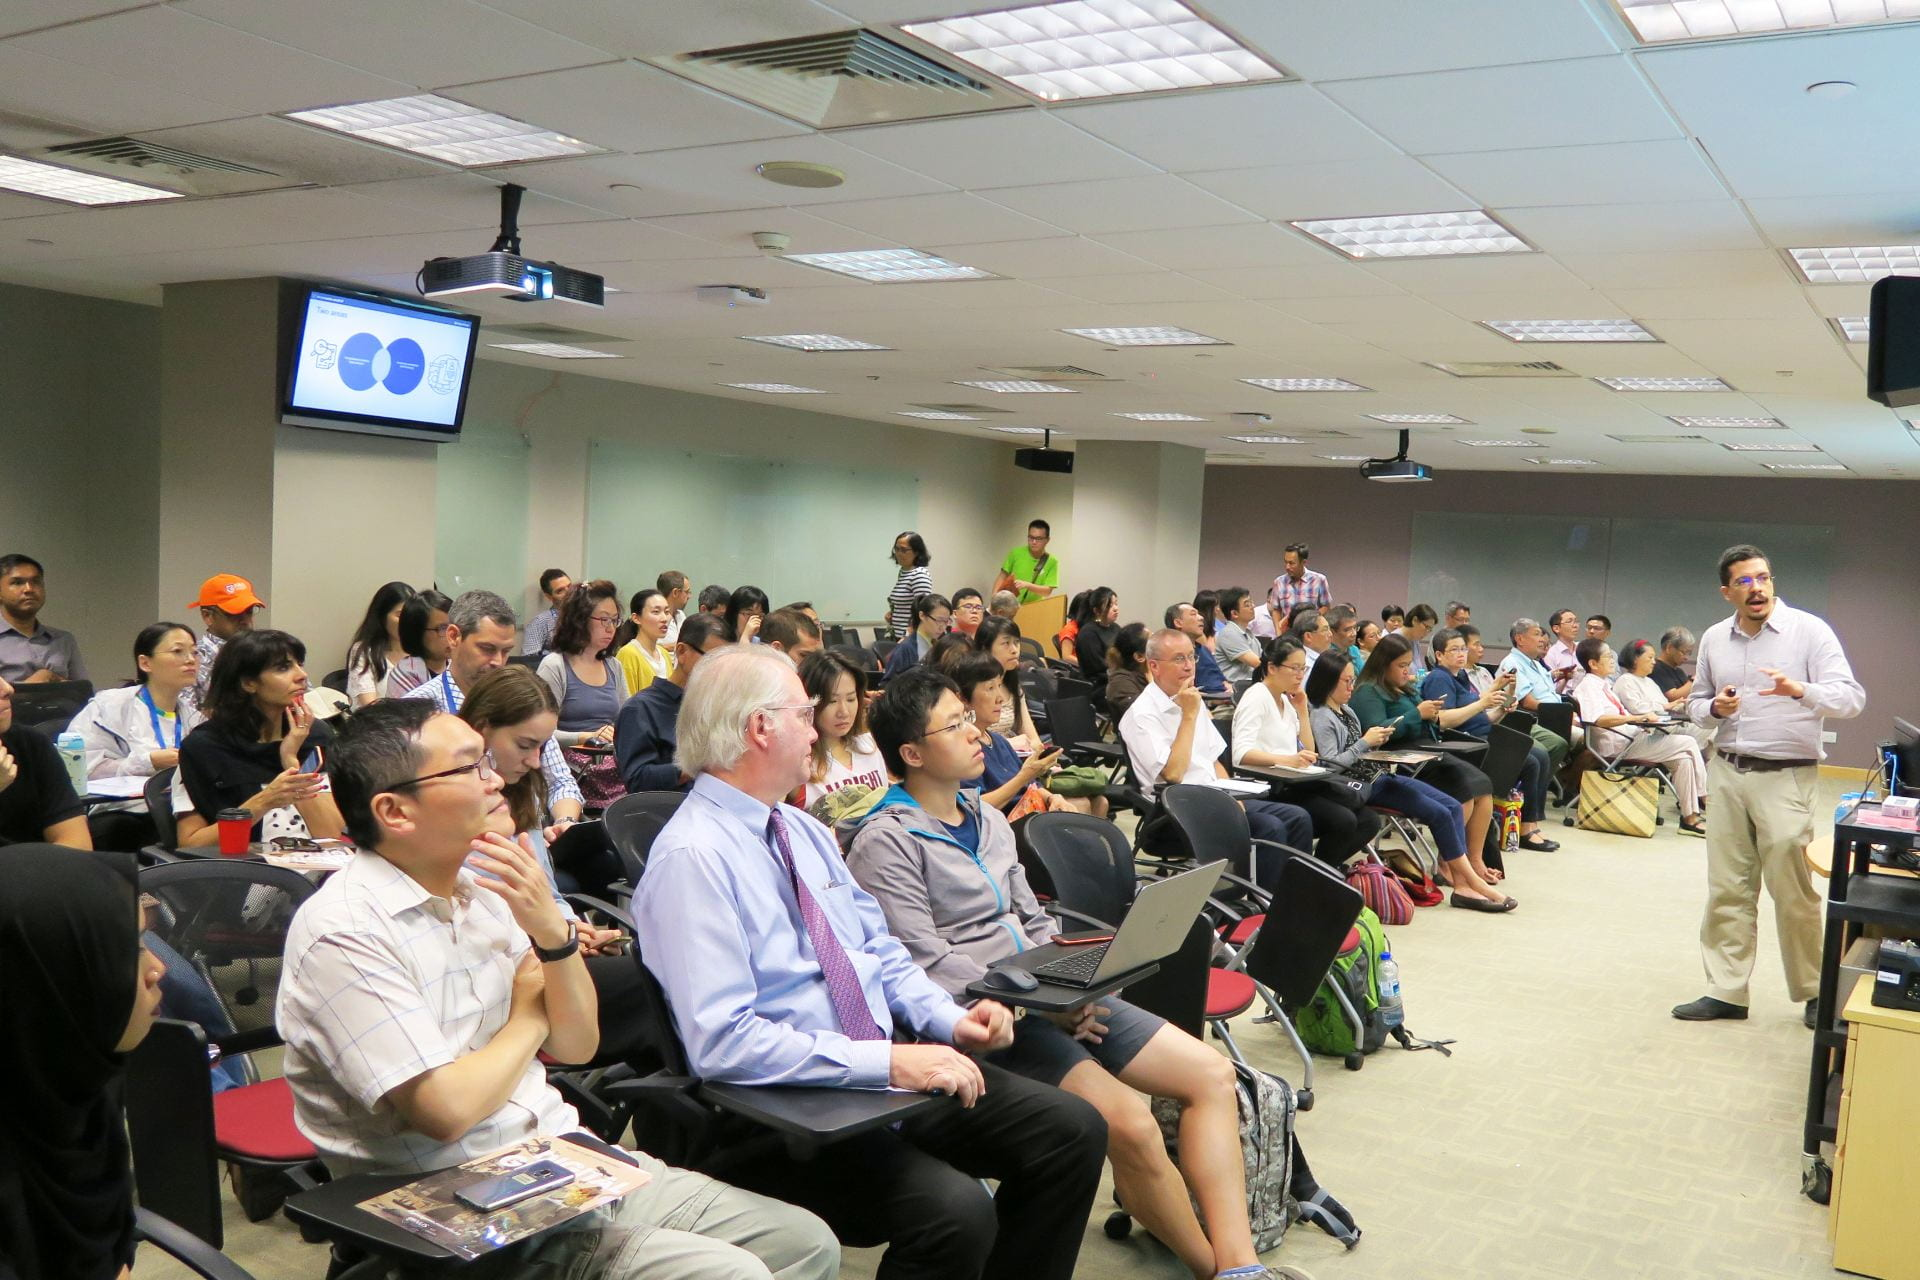 Full house in the Central Library Theatrette as our participants were engrossed in the presentations